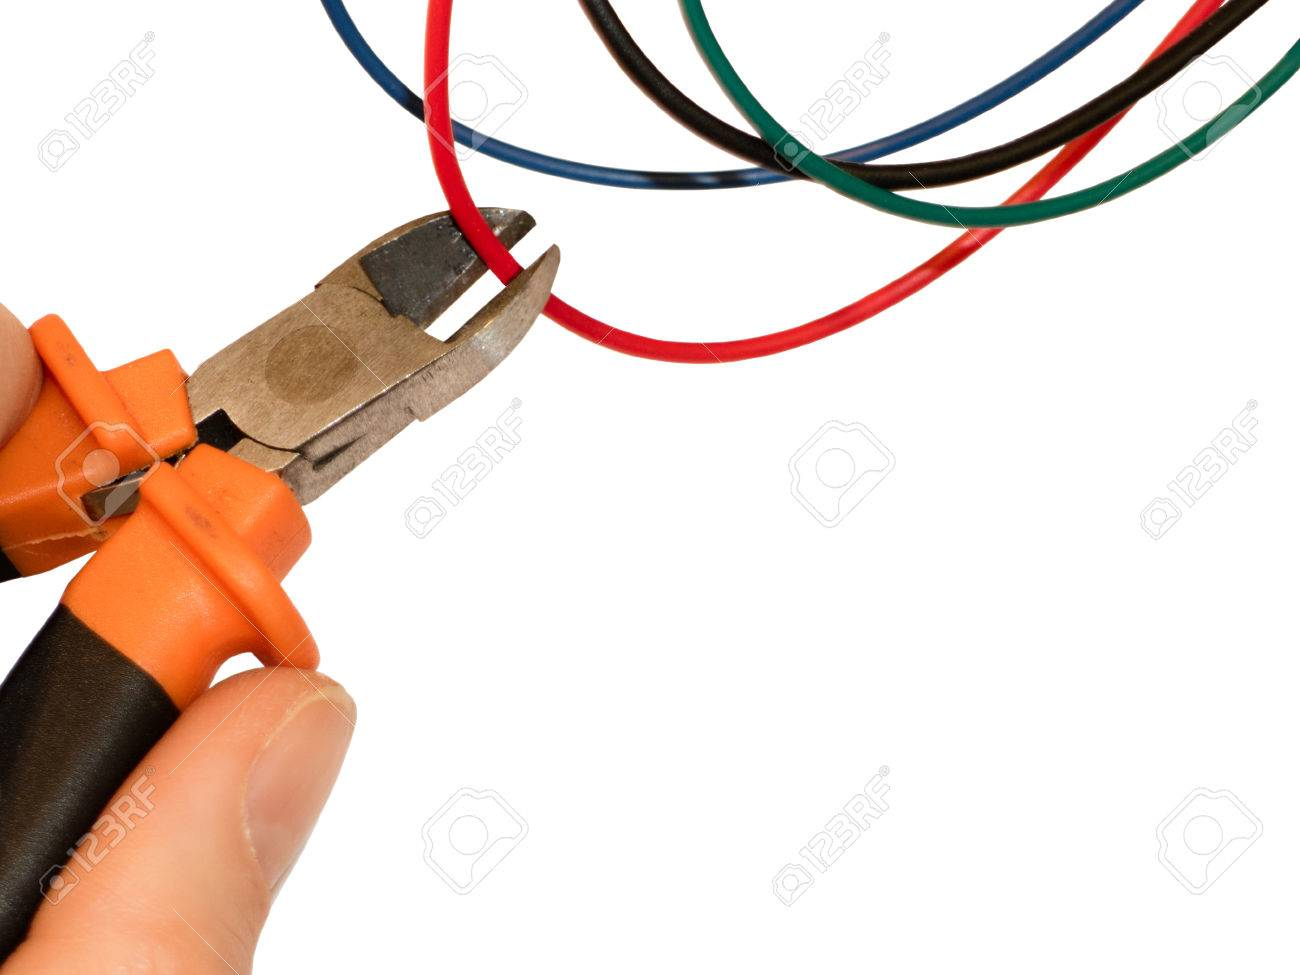 Cutting Red Wire By Wire Cutters. Safety Precautions, Bomb ...